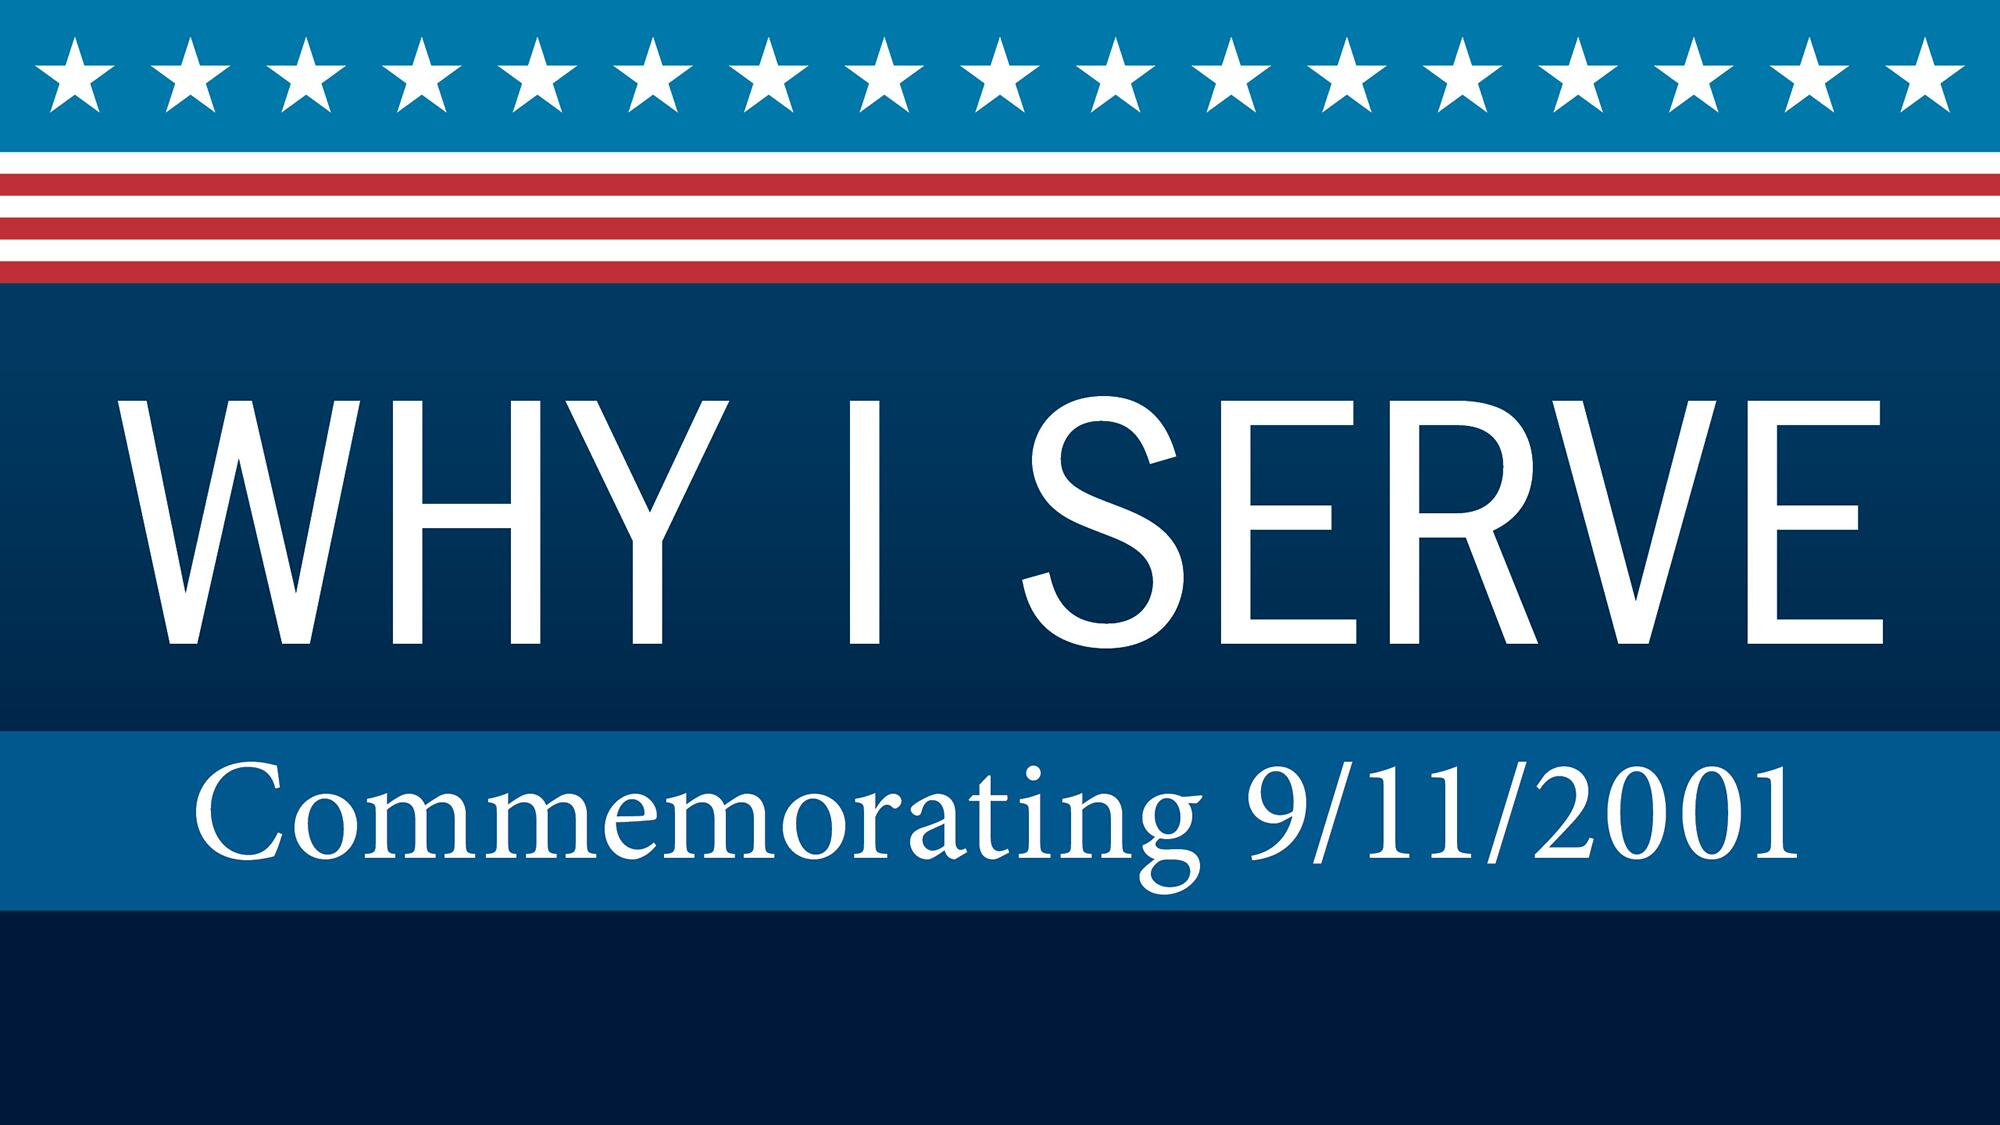 Why I Serve: Commemorating 9/11